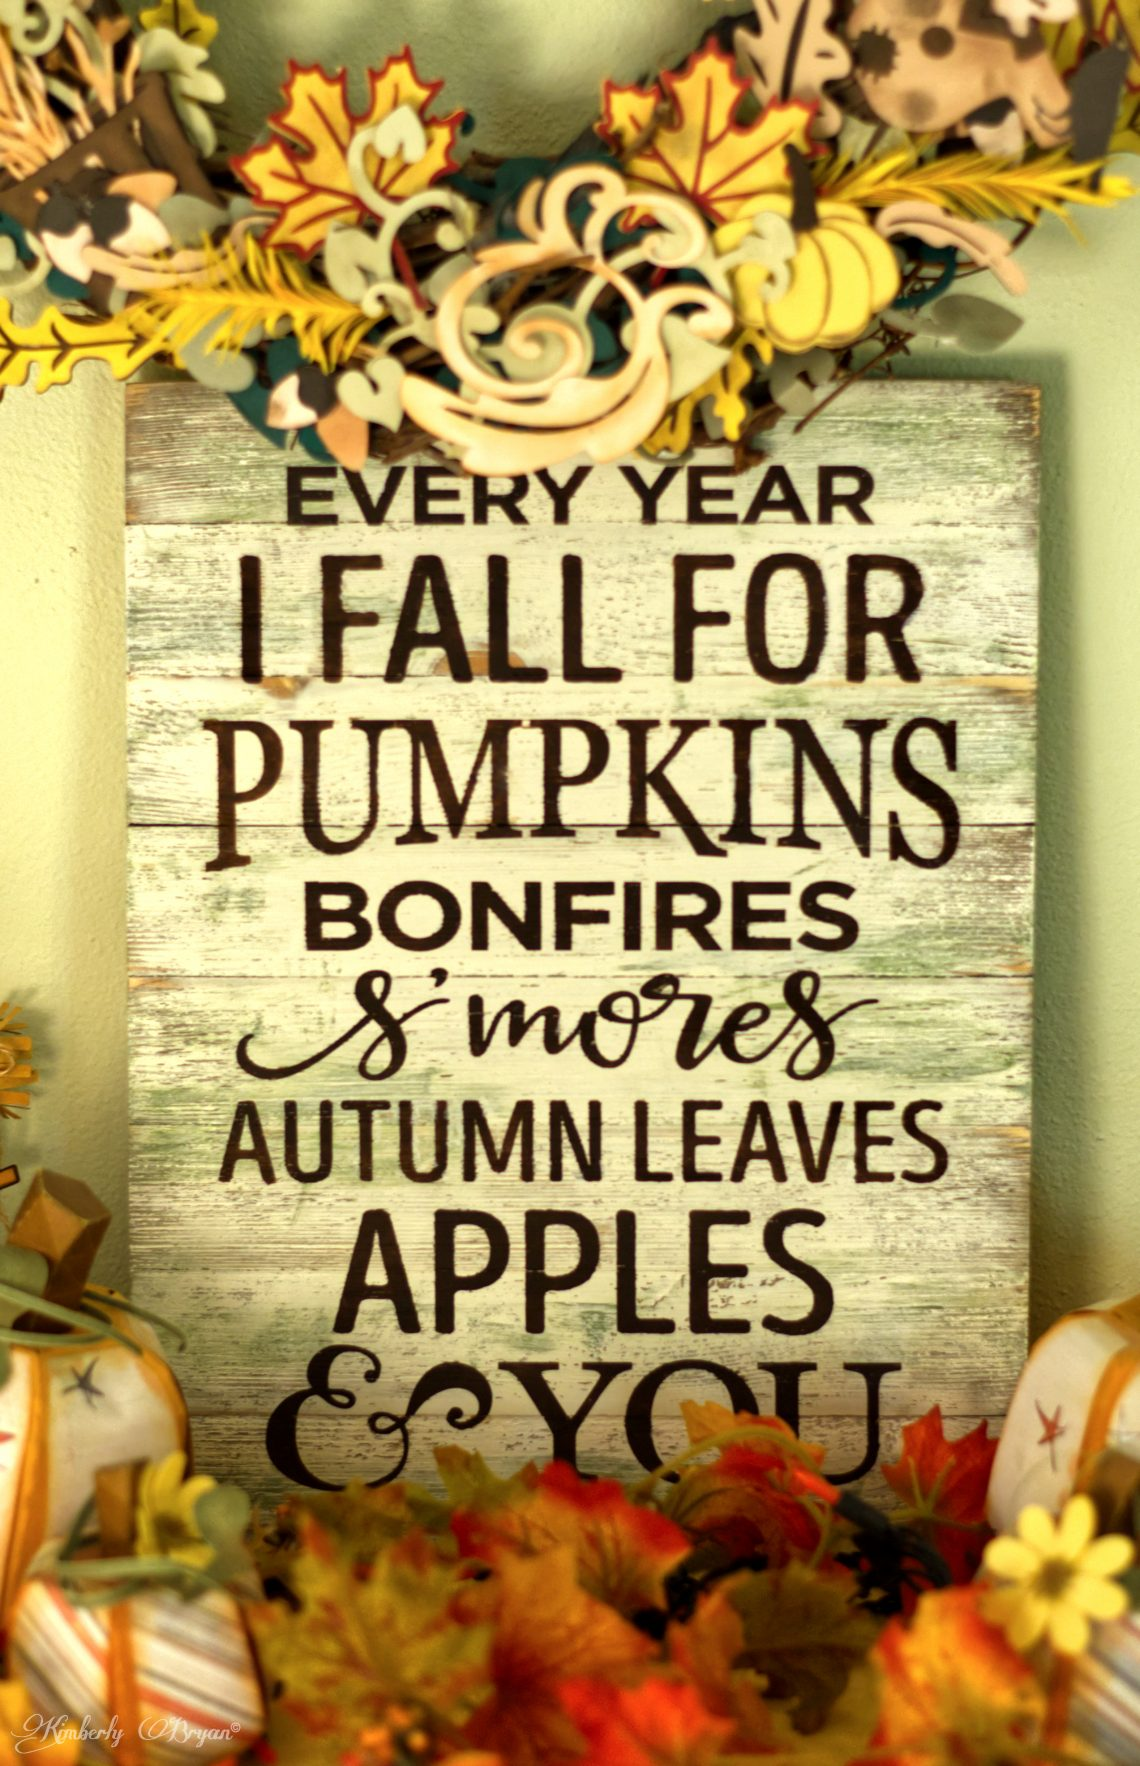 "You are looking at a sign I made with the phrase "" Every Year I Fall For Pumpkins Bonfires Smores Autumn Leave Apples & You. This is a post from, my Every Year I Fall."